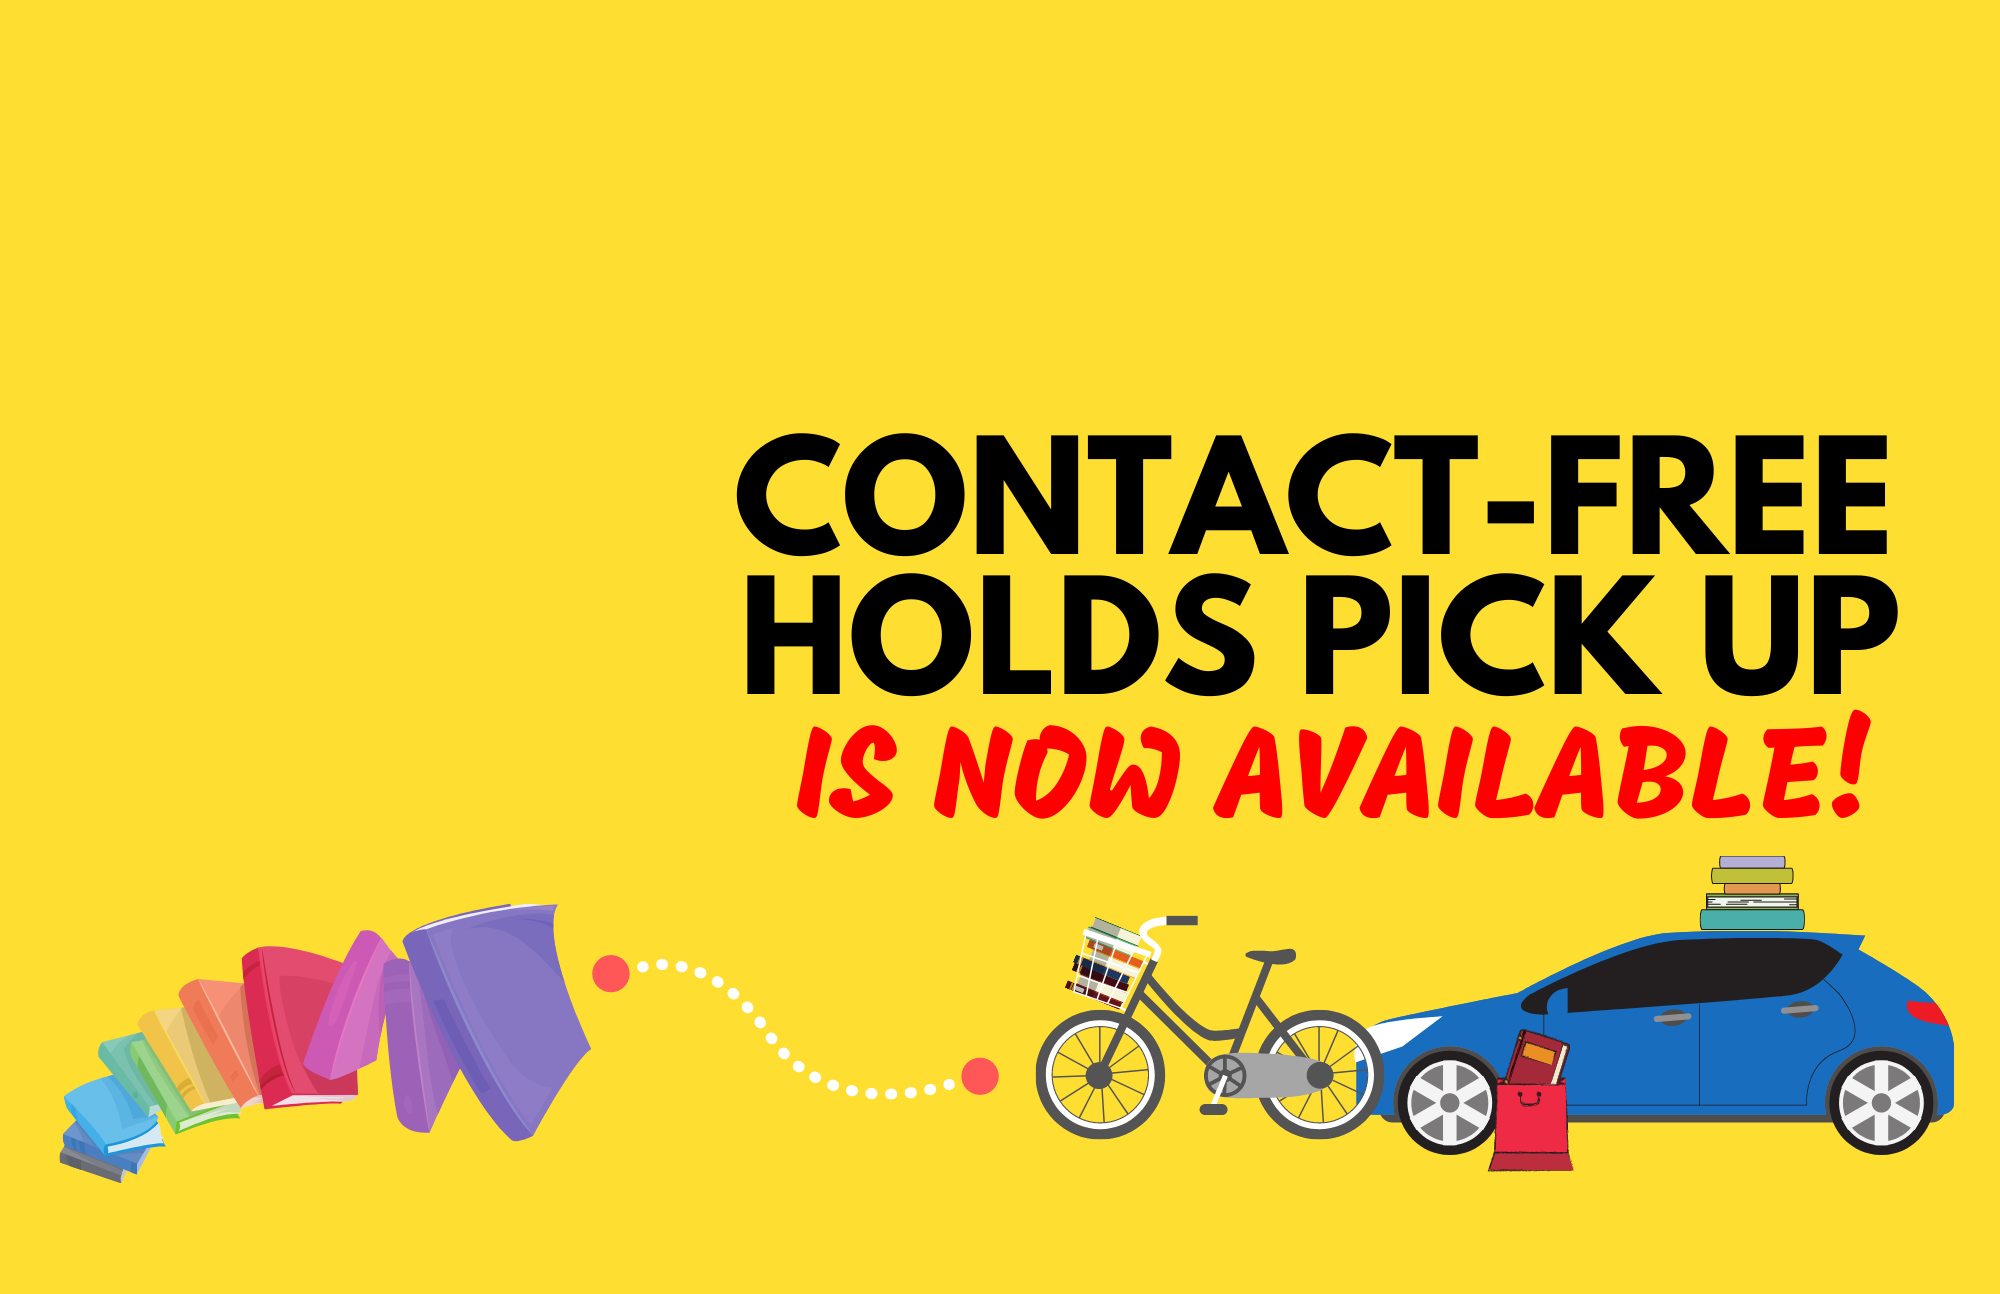 Contact-Free Holds Pick Up Service